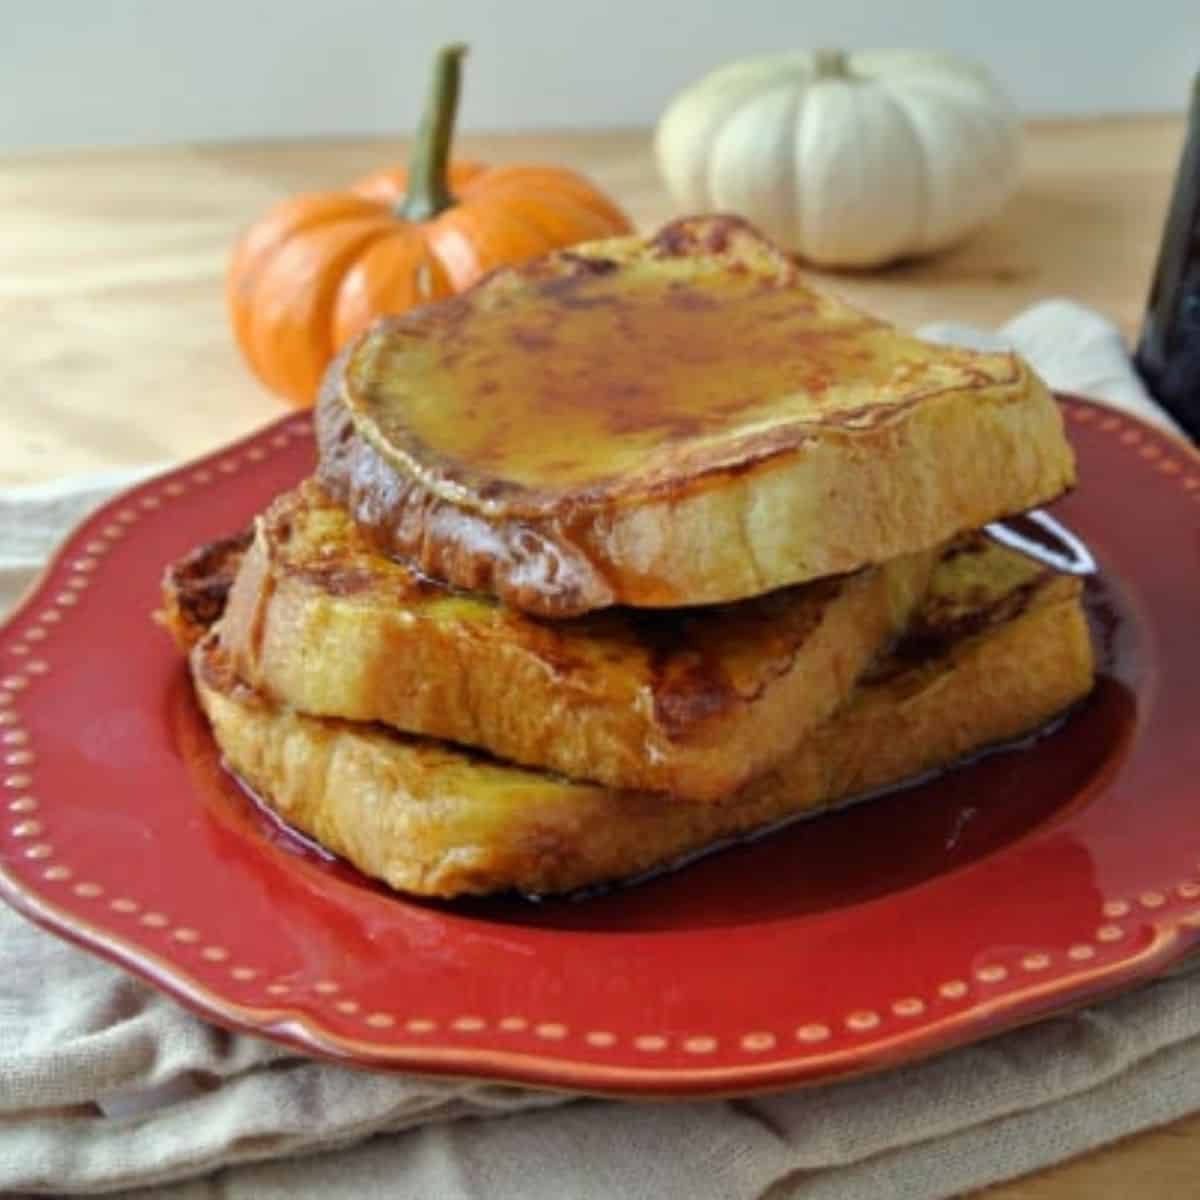 Three slices of pumpkin french toast sitting on a red plate. Maple syrup is on top of the slices with two mini pumpkins, one orange and one in the background